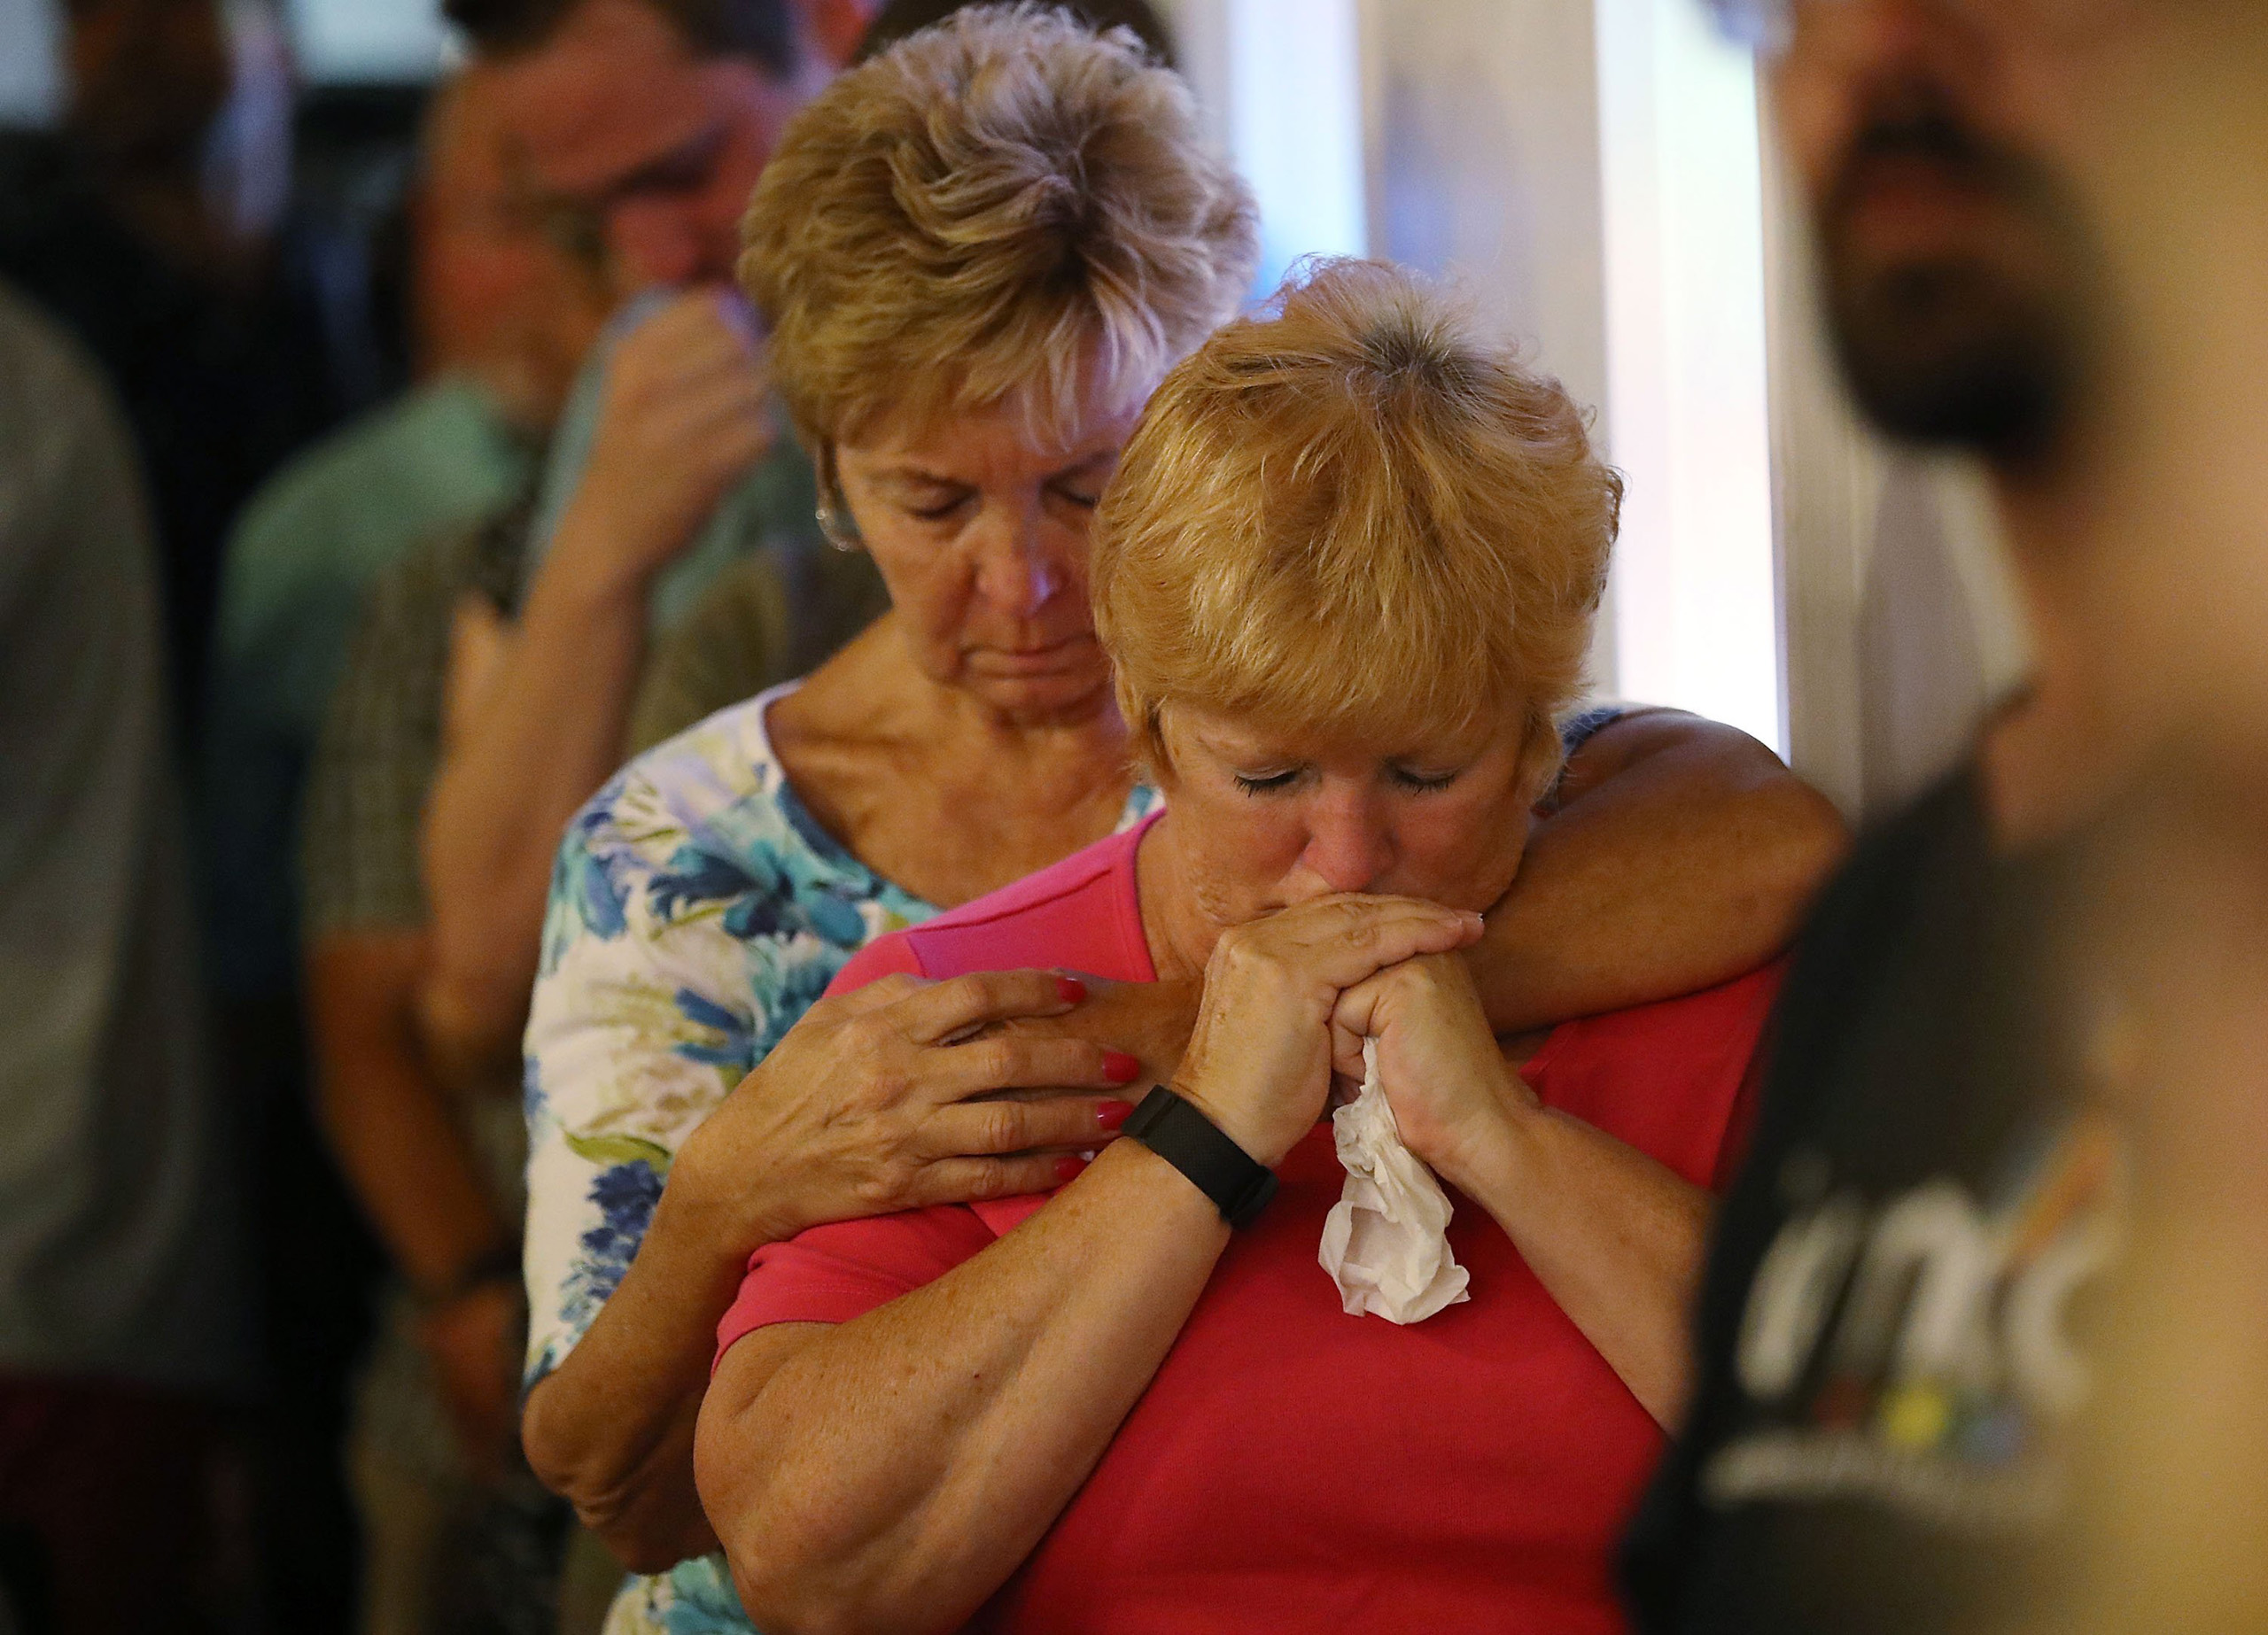 Mourners attend a memorial service at the Joy MCC Church for the victims of the terror attack at the the Pulse Nightclub where Omar Mateen allegedly killed more than 50 people in Orlando on June 12, 2016.